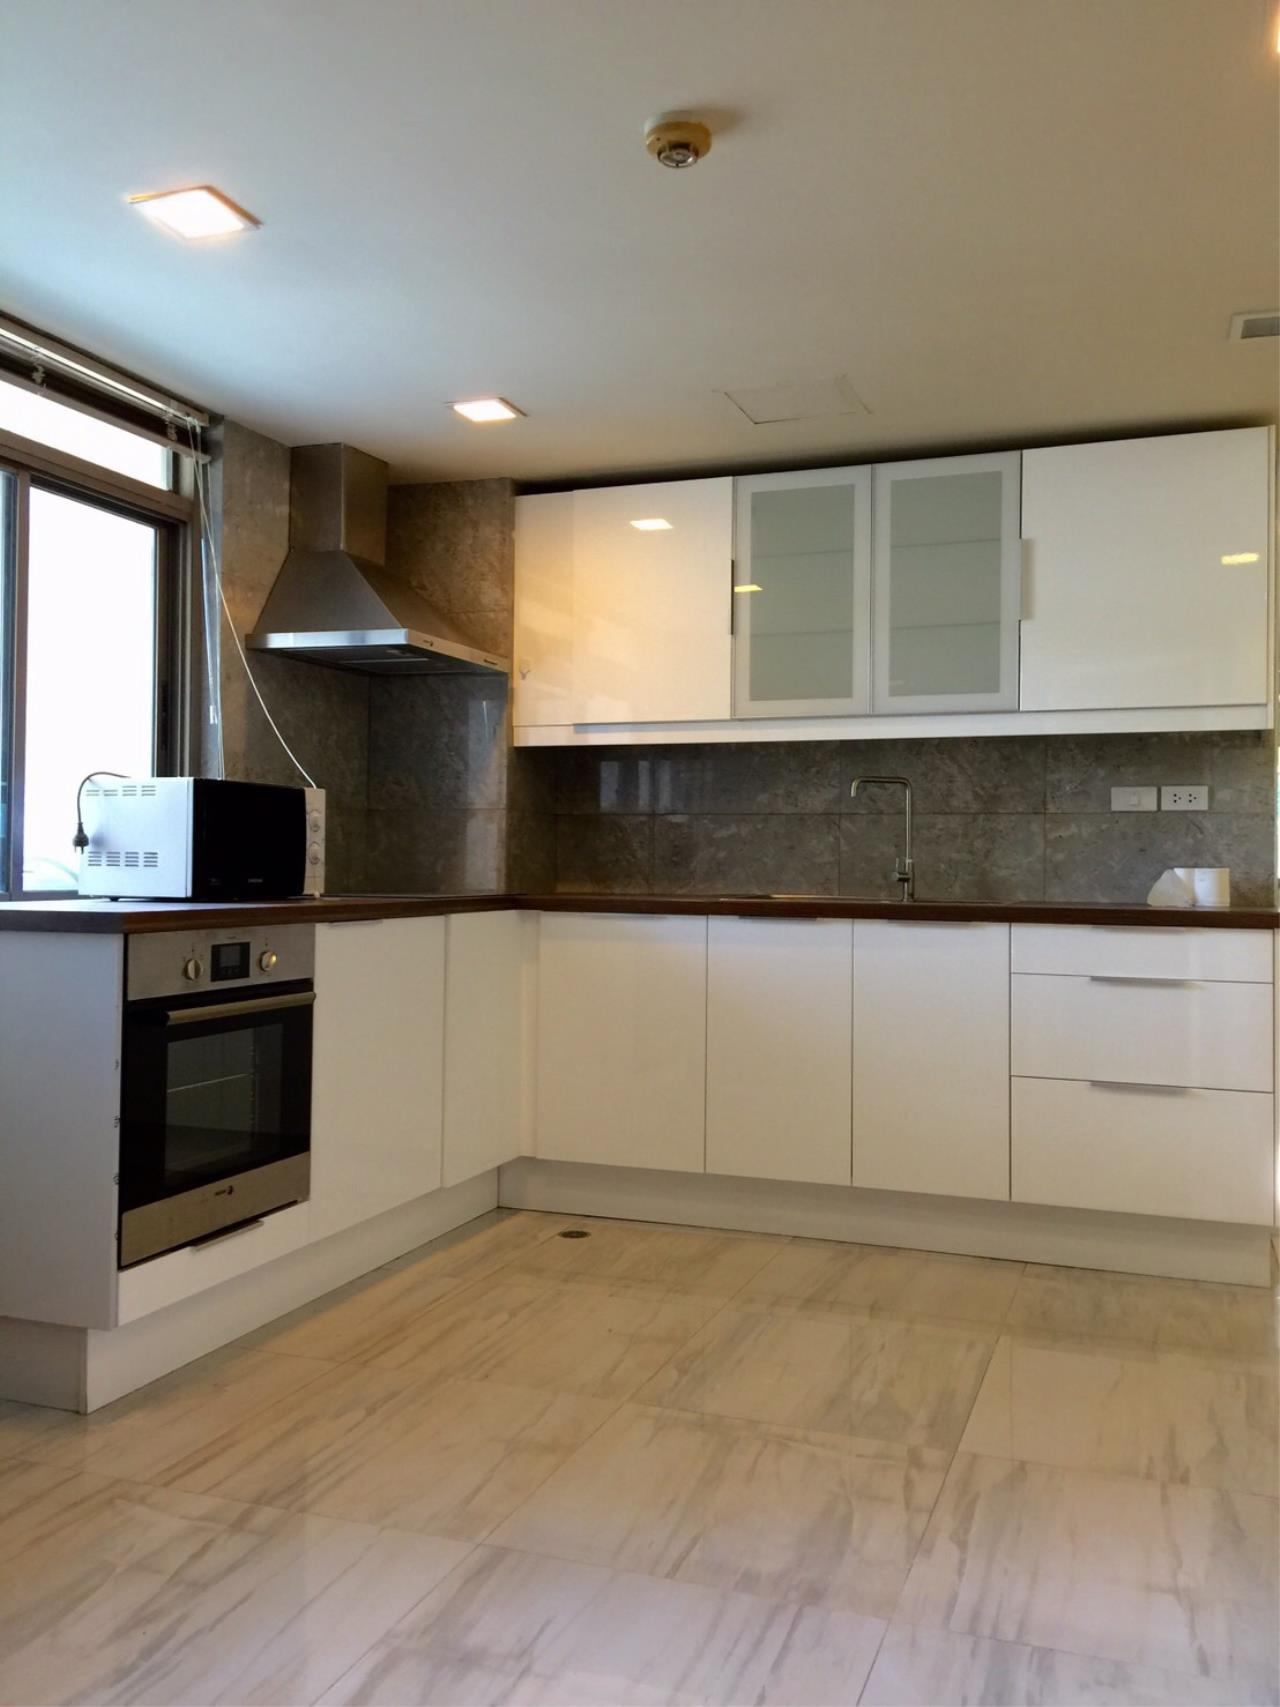 RE/MAX All Star Realty Agency's Royal Castle large 3-4 beds 202sqm for rent (BTS Phrom Phong) 6